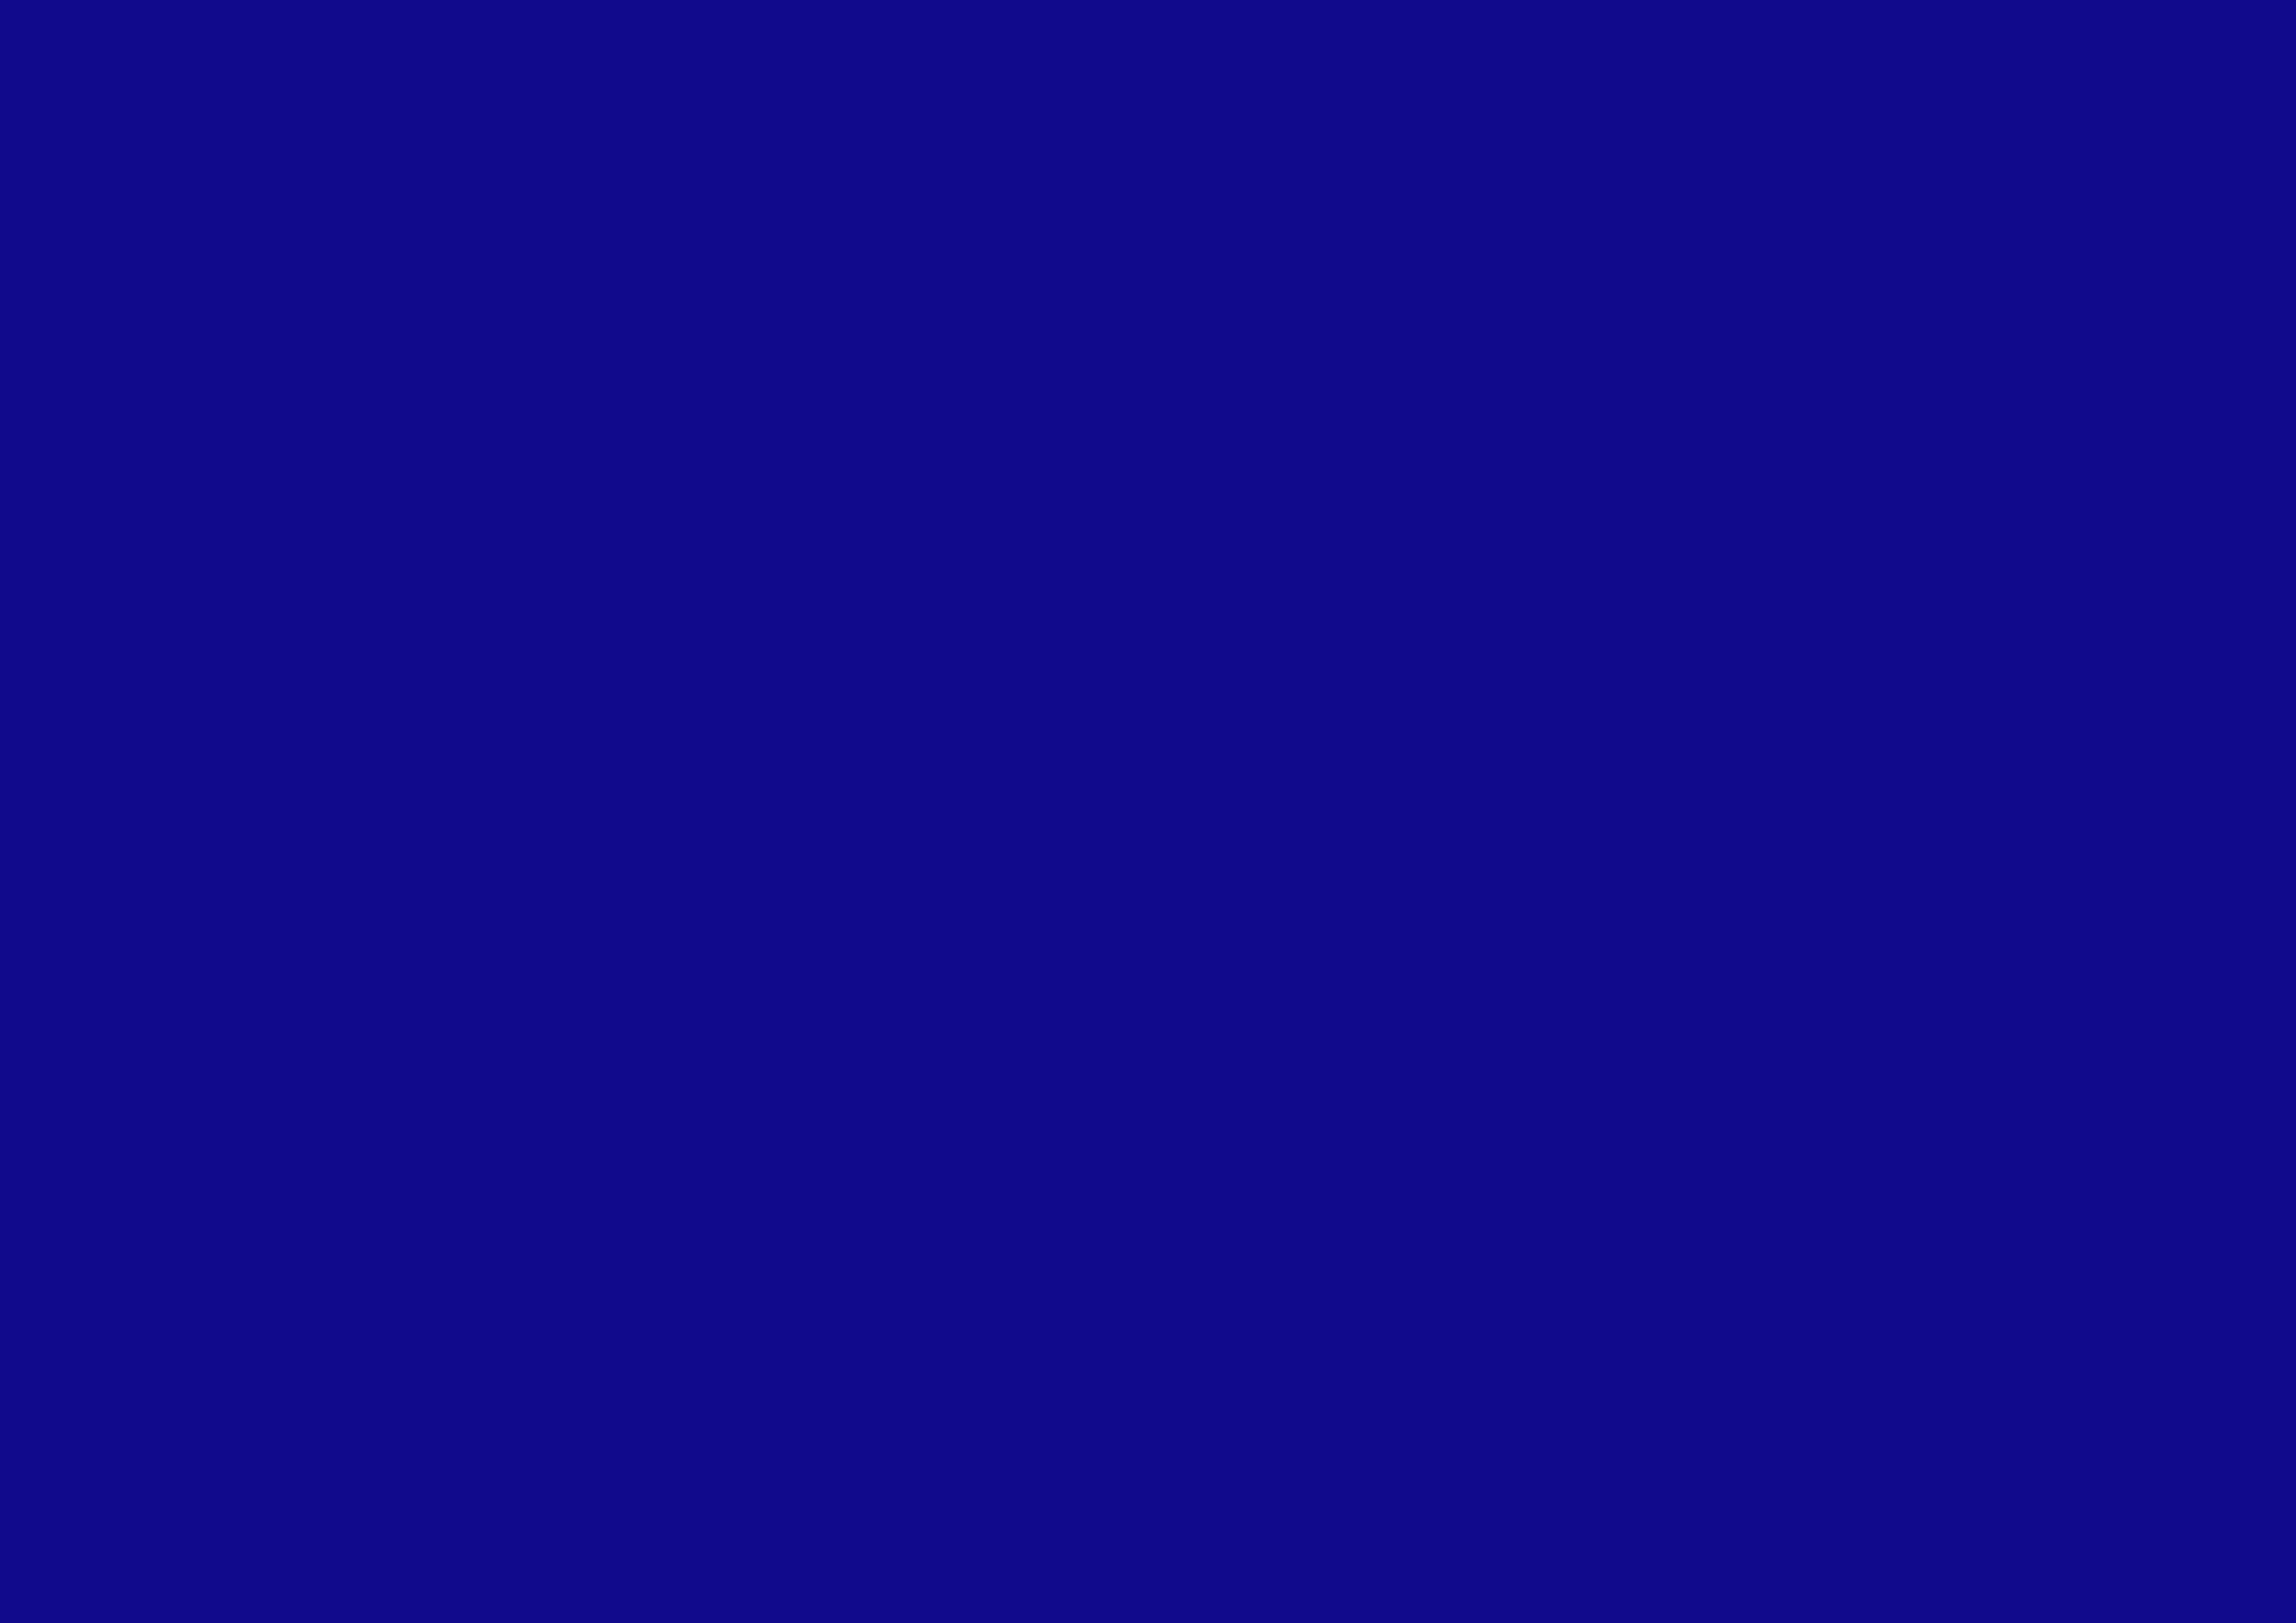 3508x2480 Ultramarine Solid Color Background 3508x2480